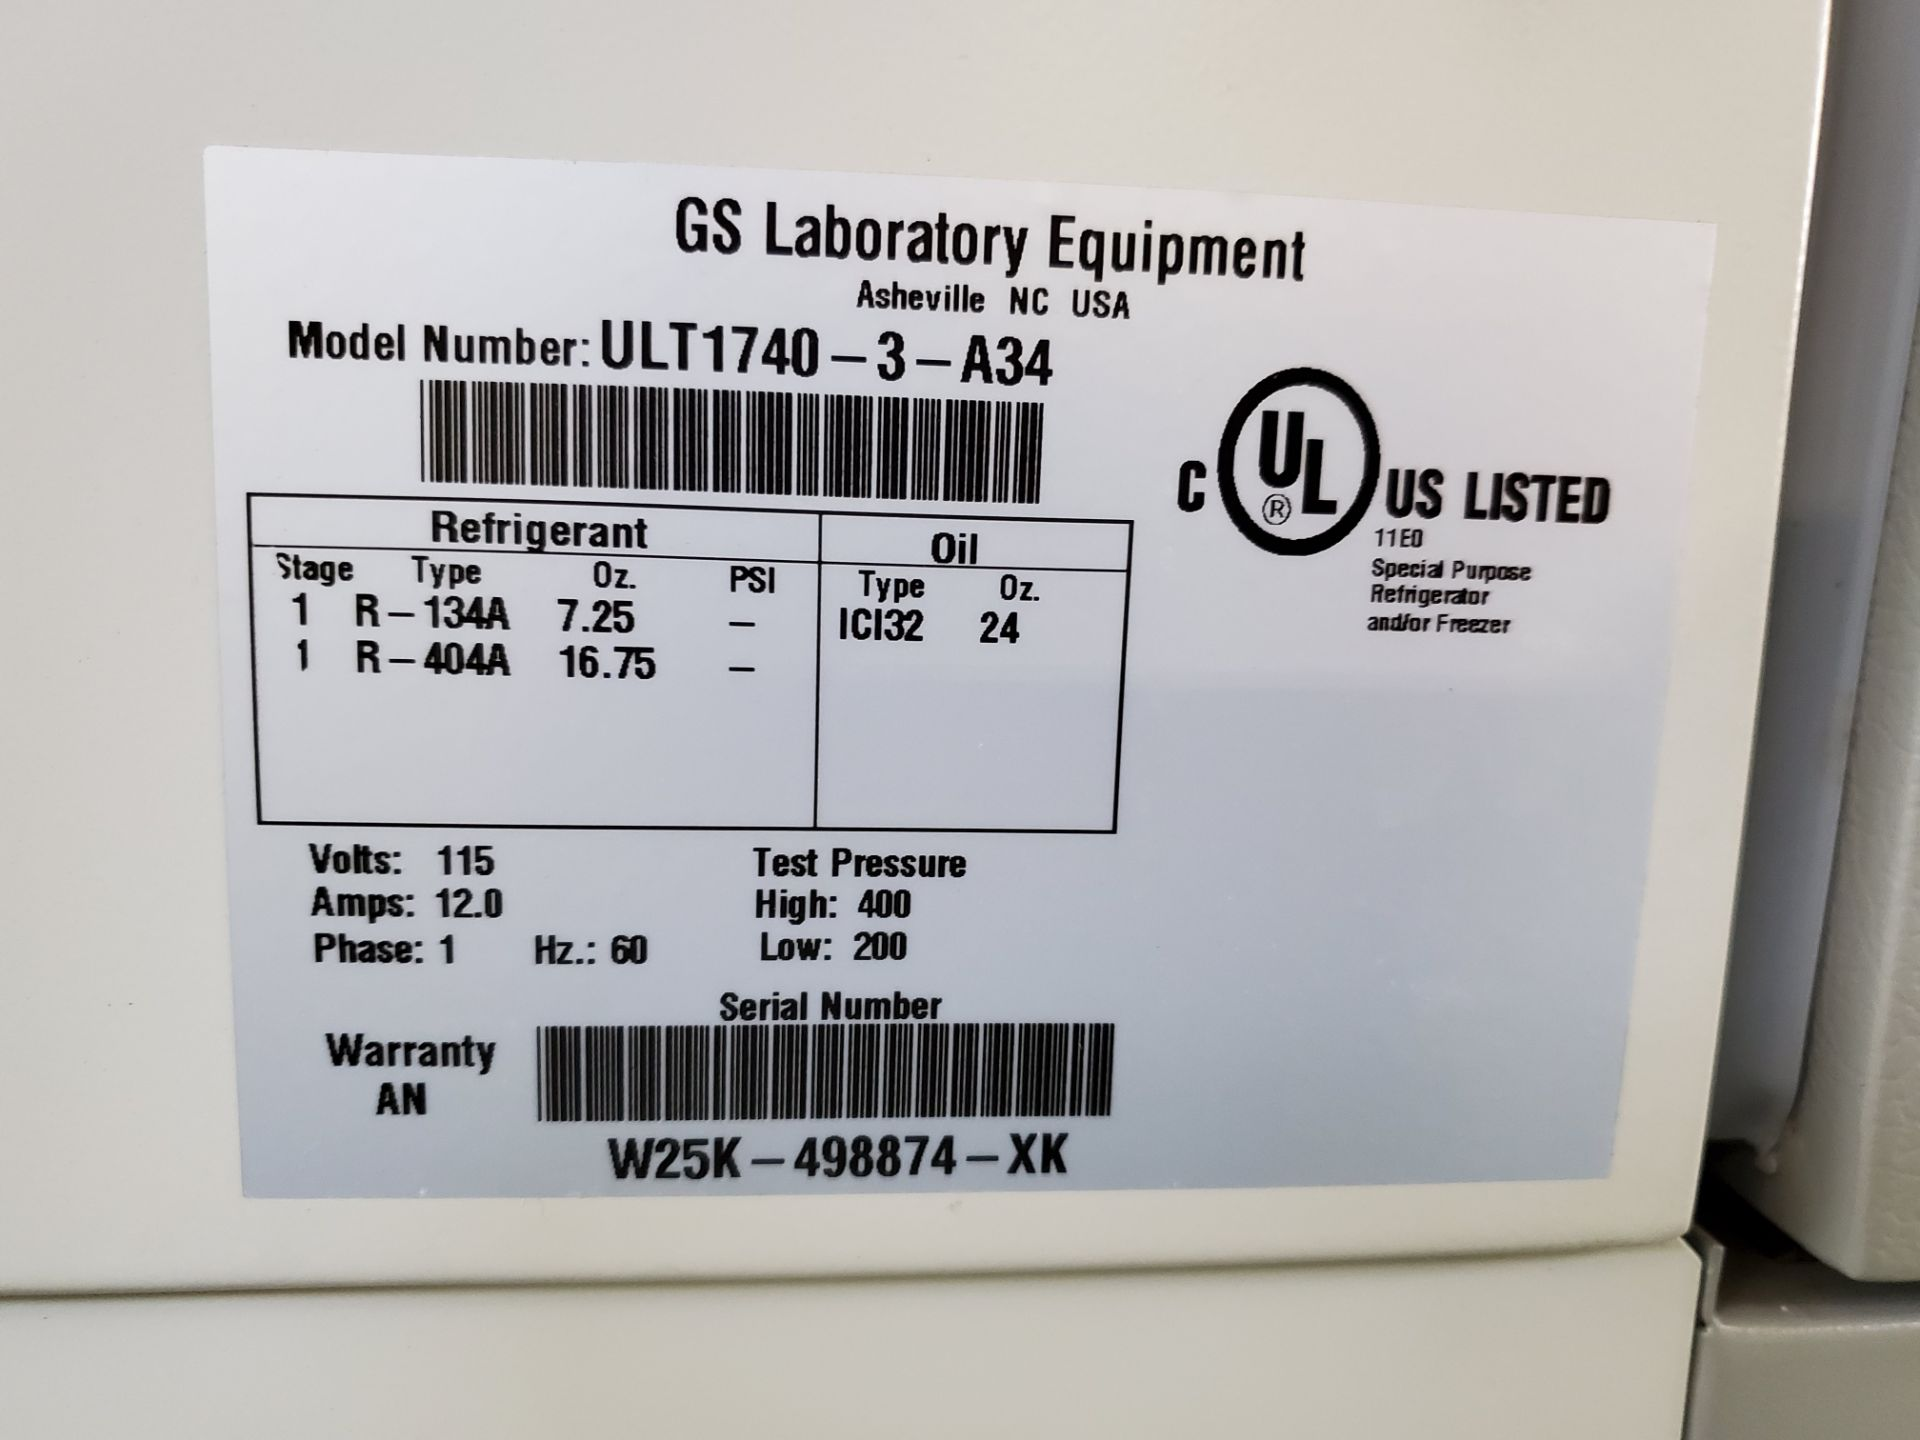 Revco/GS Laboratory Equipment Freezer, model ULT1740-3-A34 - Image 6 of 7